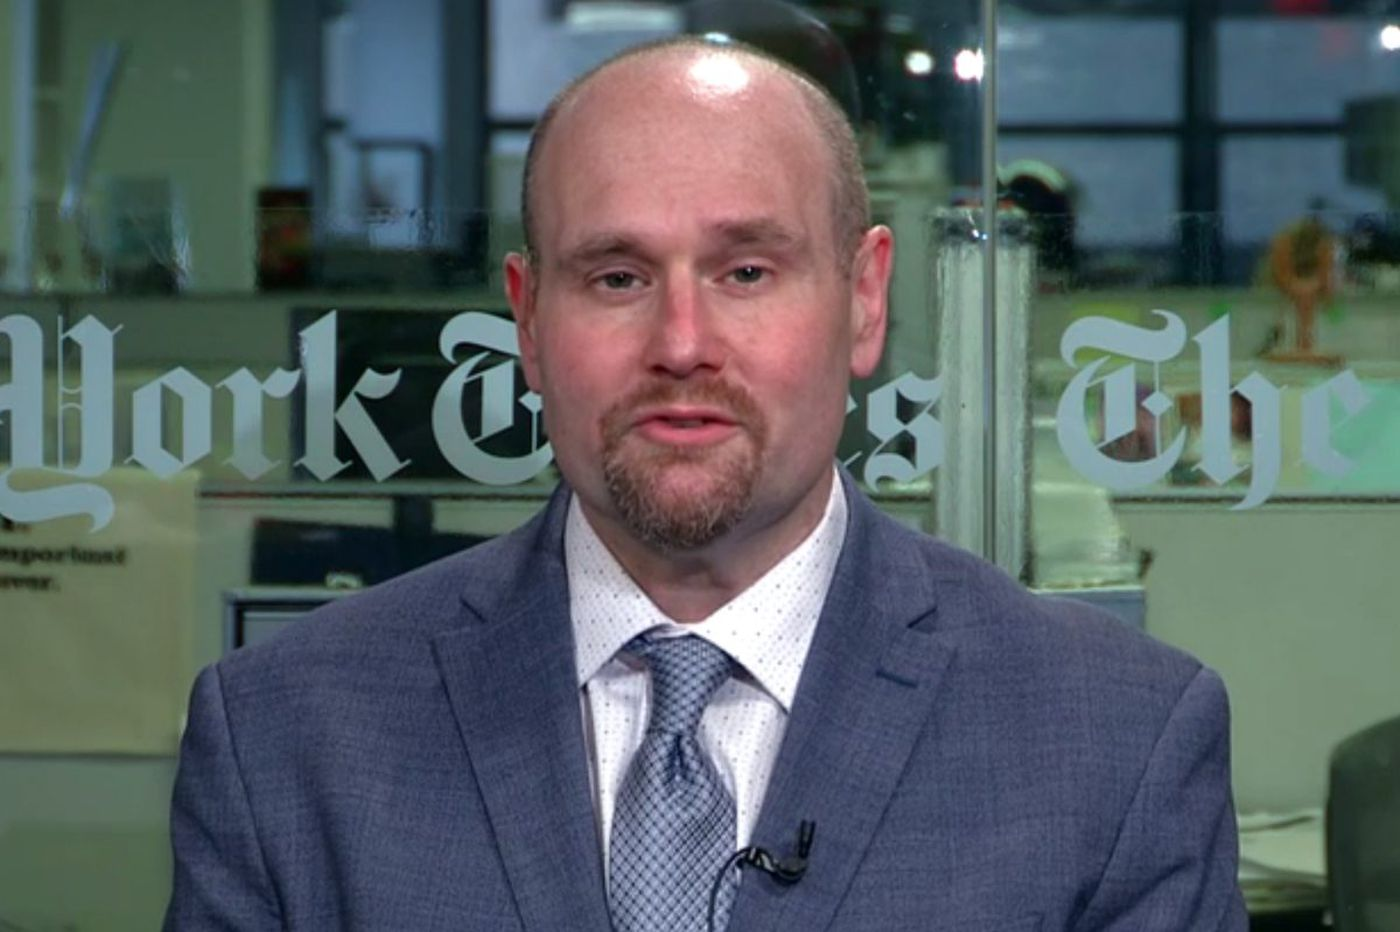 Prominent New York Times political reporter Glenn Thrush suspended after sexual misconduct allegations